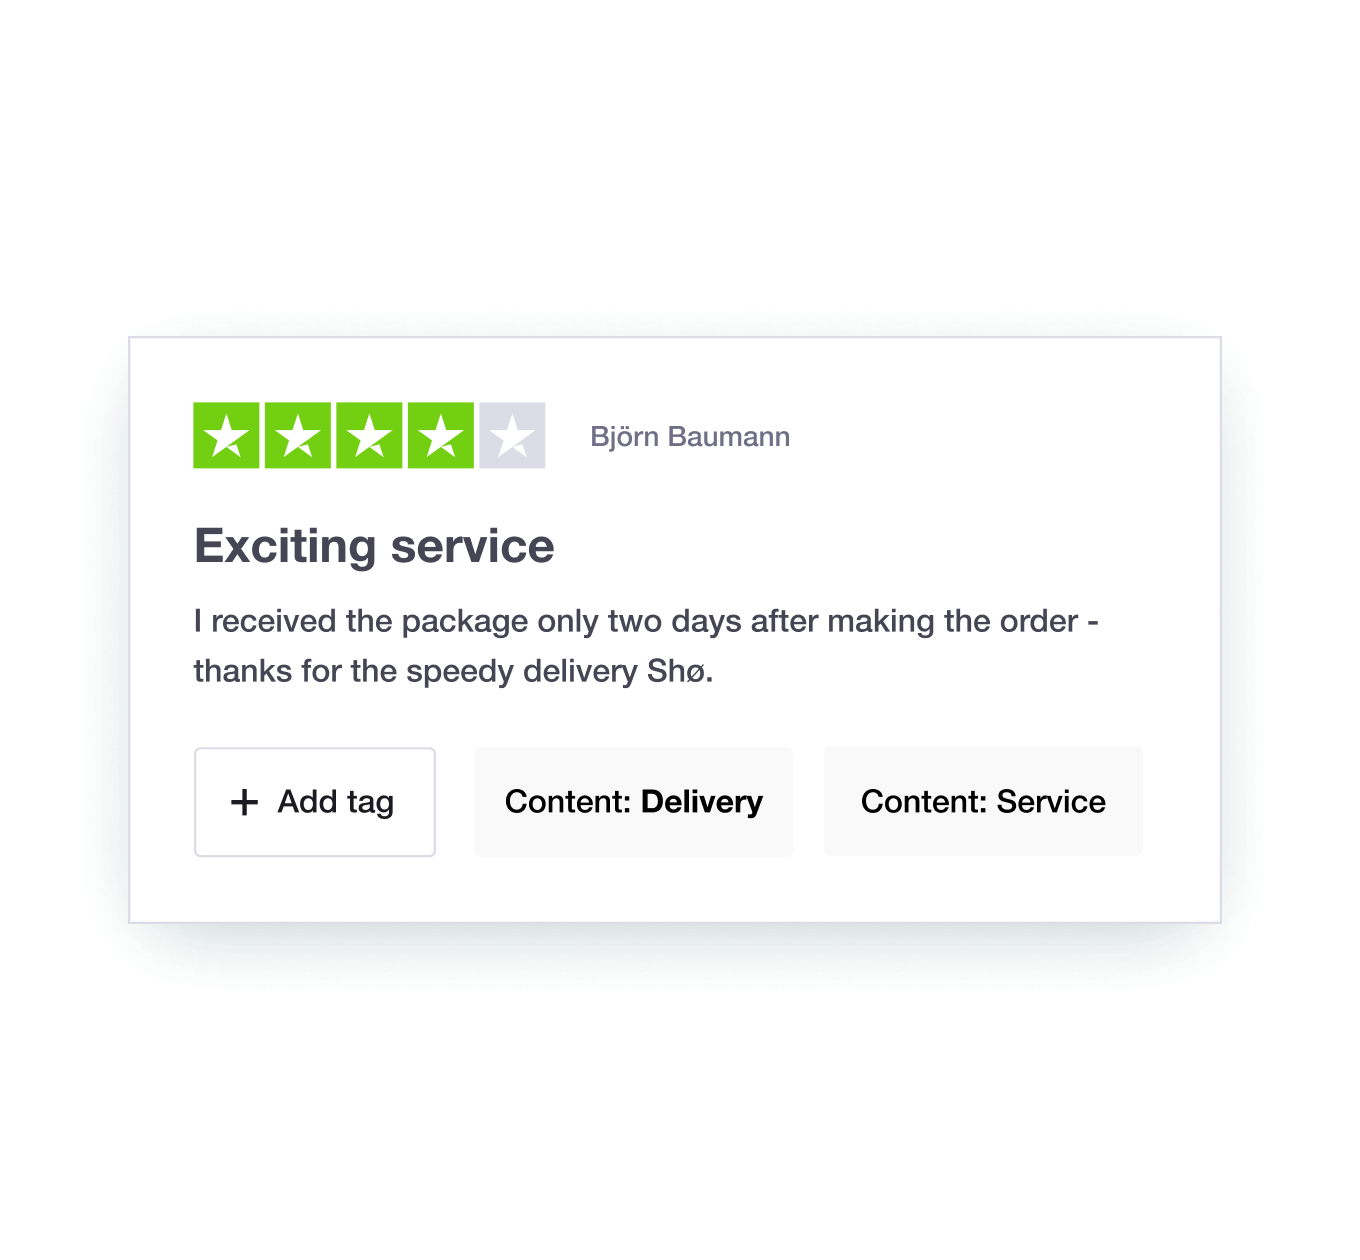 Trustpilot's Review Tagging feature